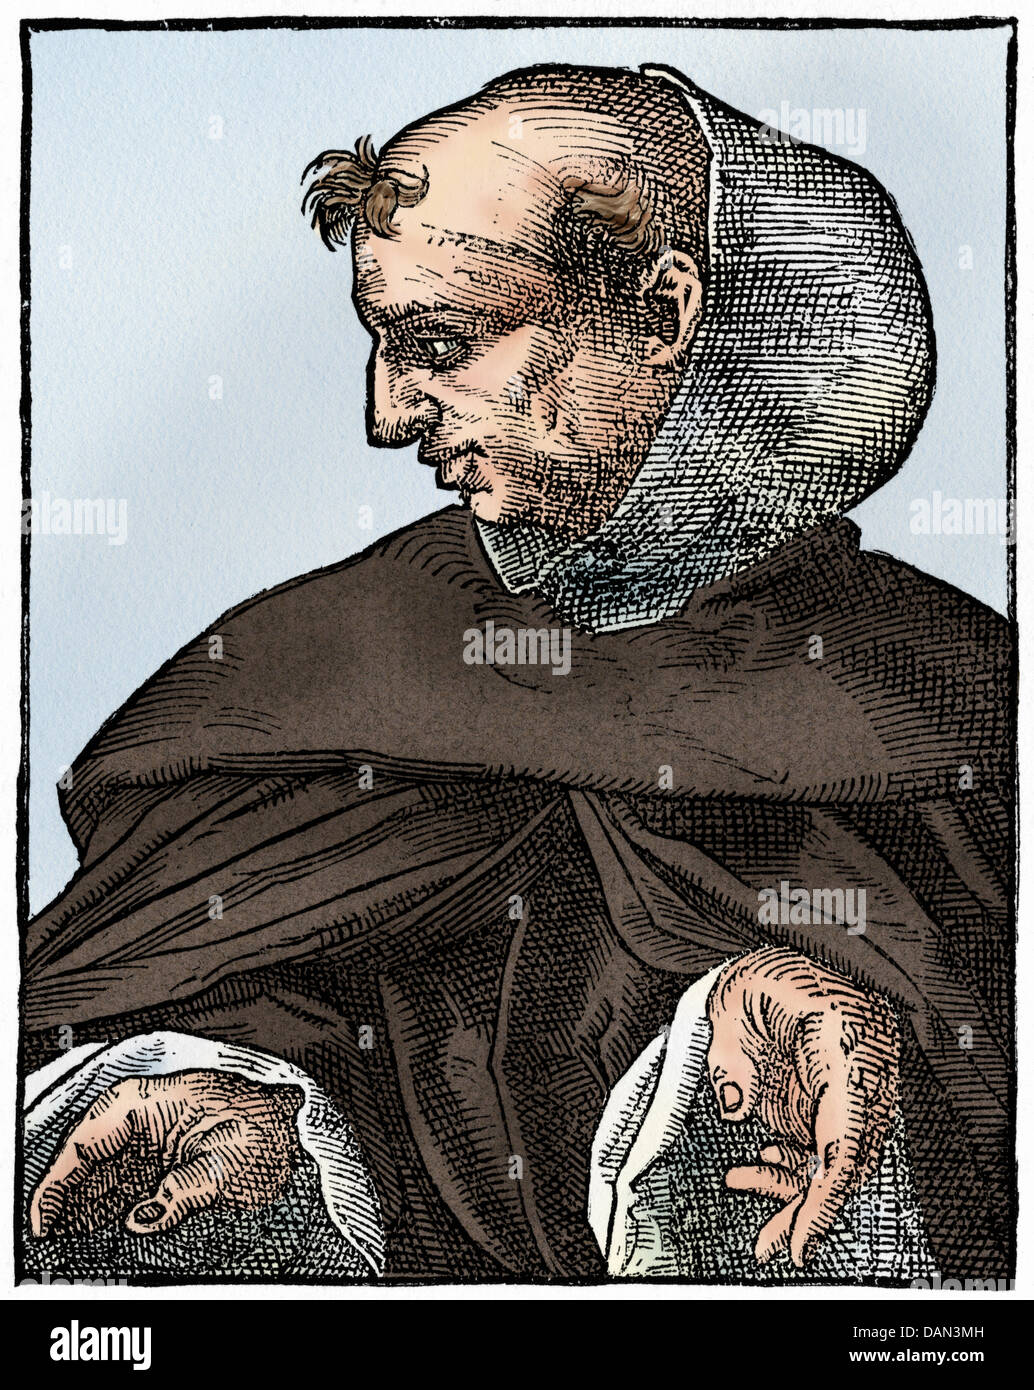 Albertus Magnus, medieval German scholar and theologian. Digitally colored woodcut - Stock Image